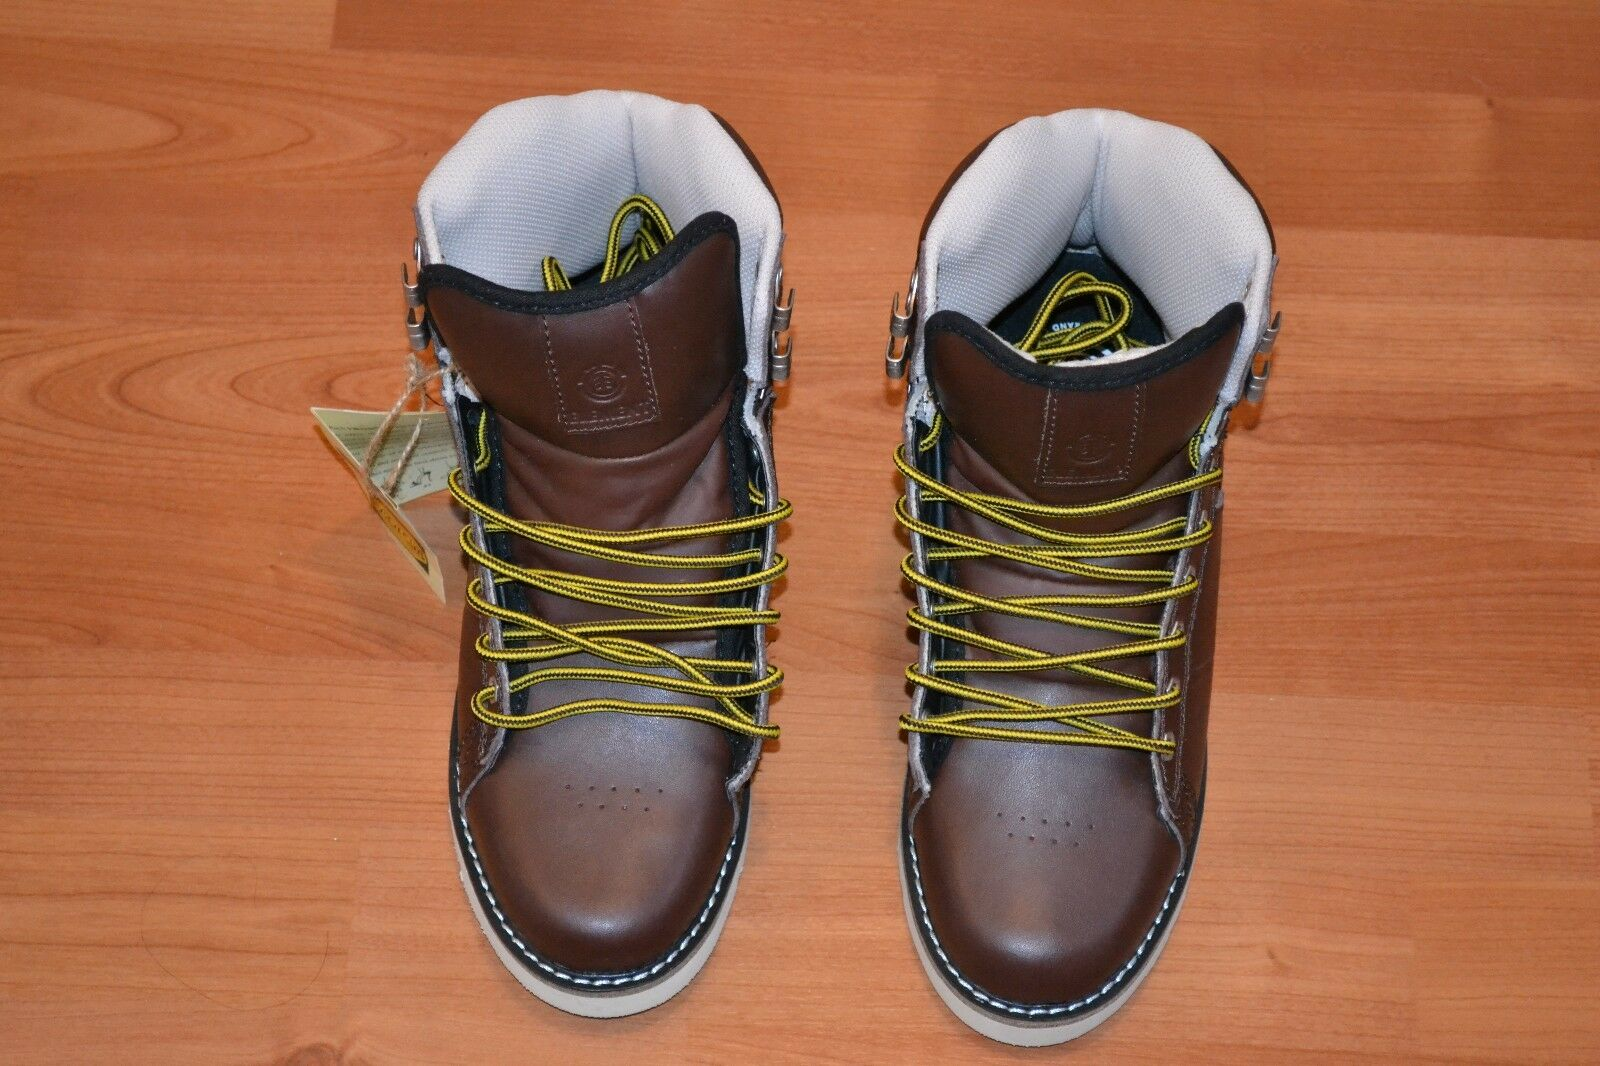 ELEMENT + MEN'S OMAHIGH + SIZE 8 + BROWN + LEATHER + BRAND NEW IN THE BOX